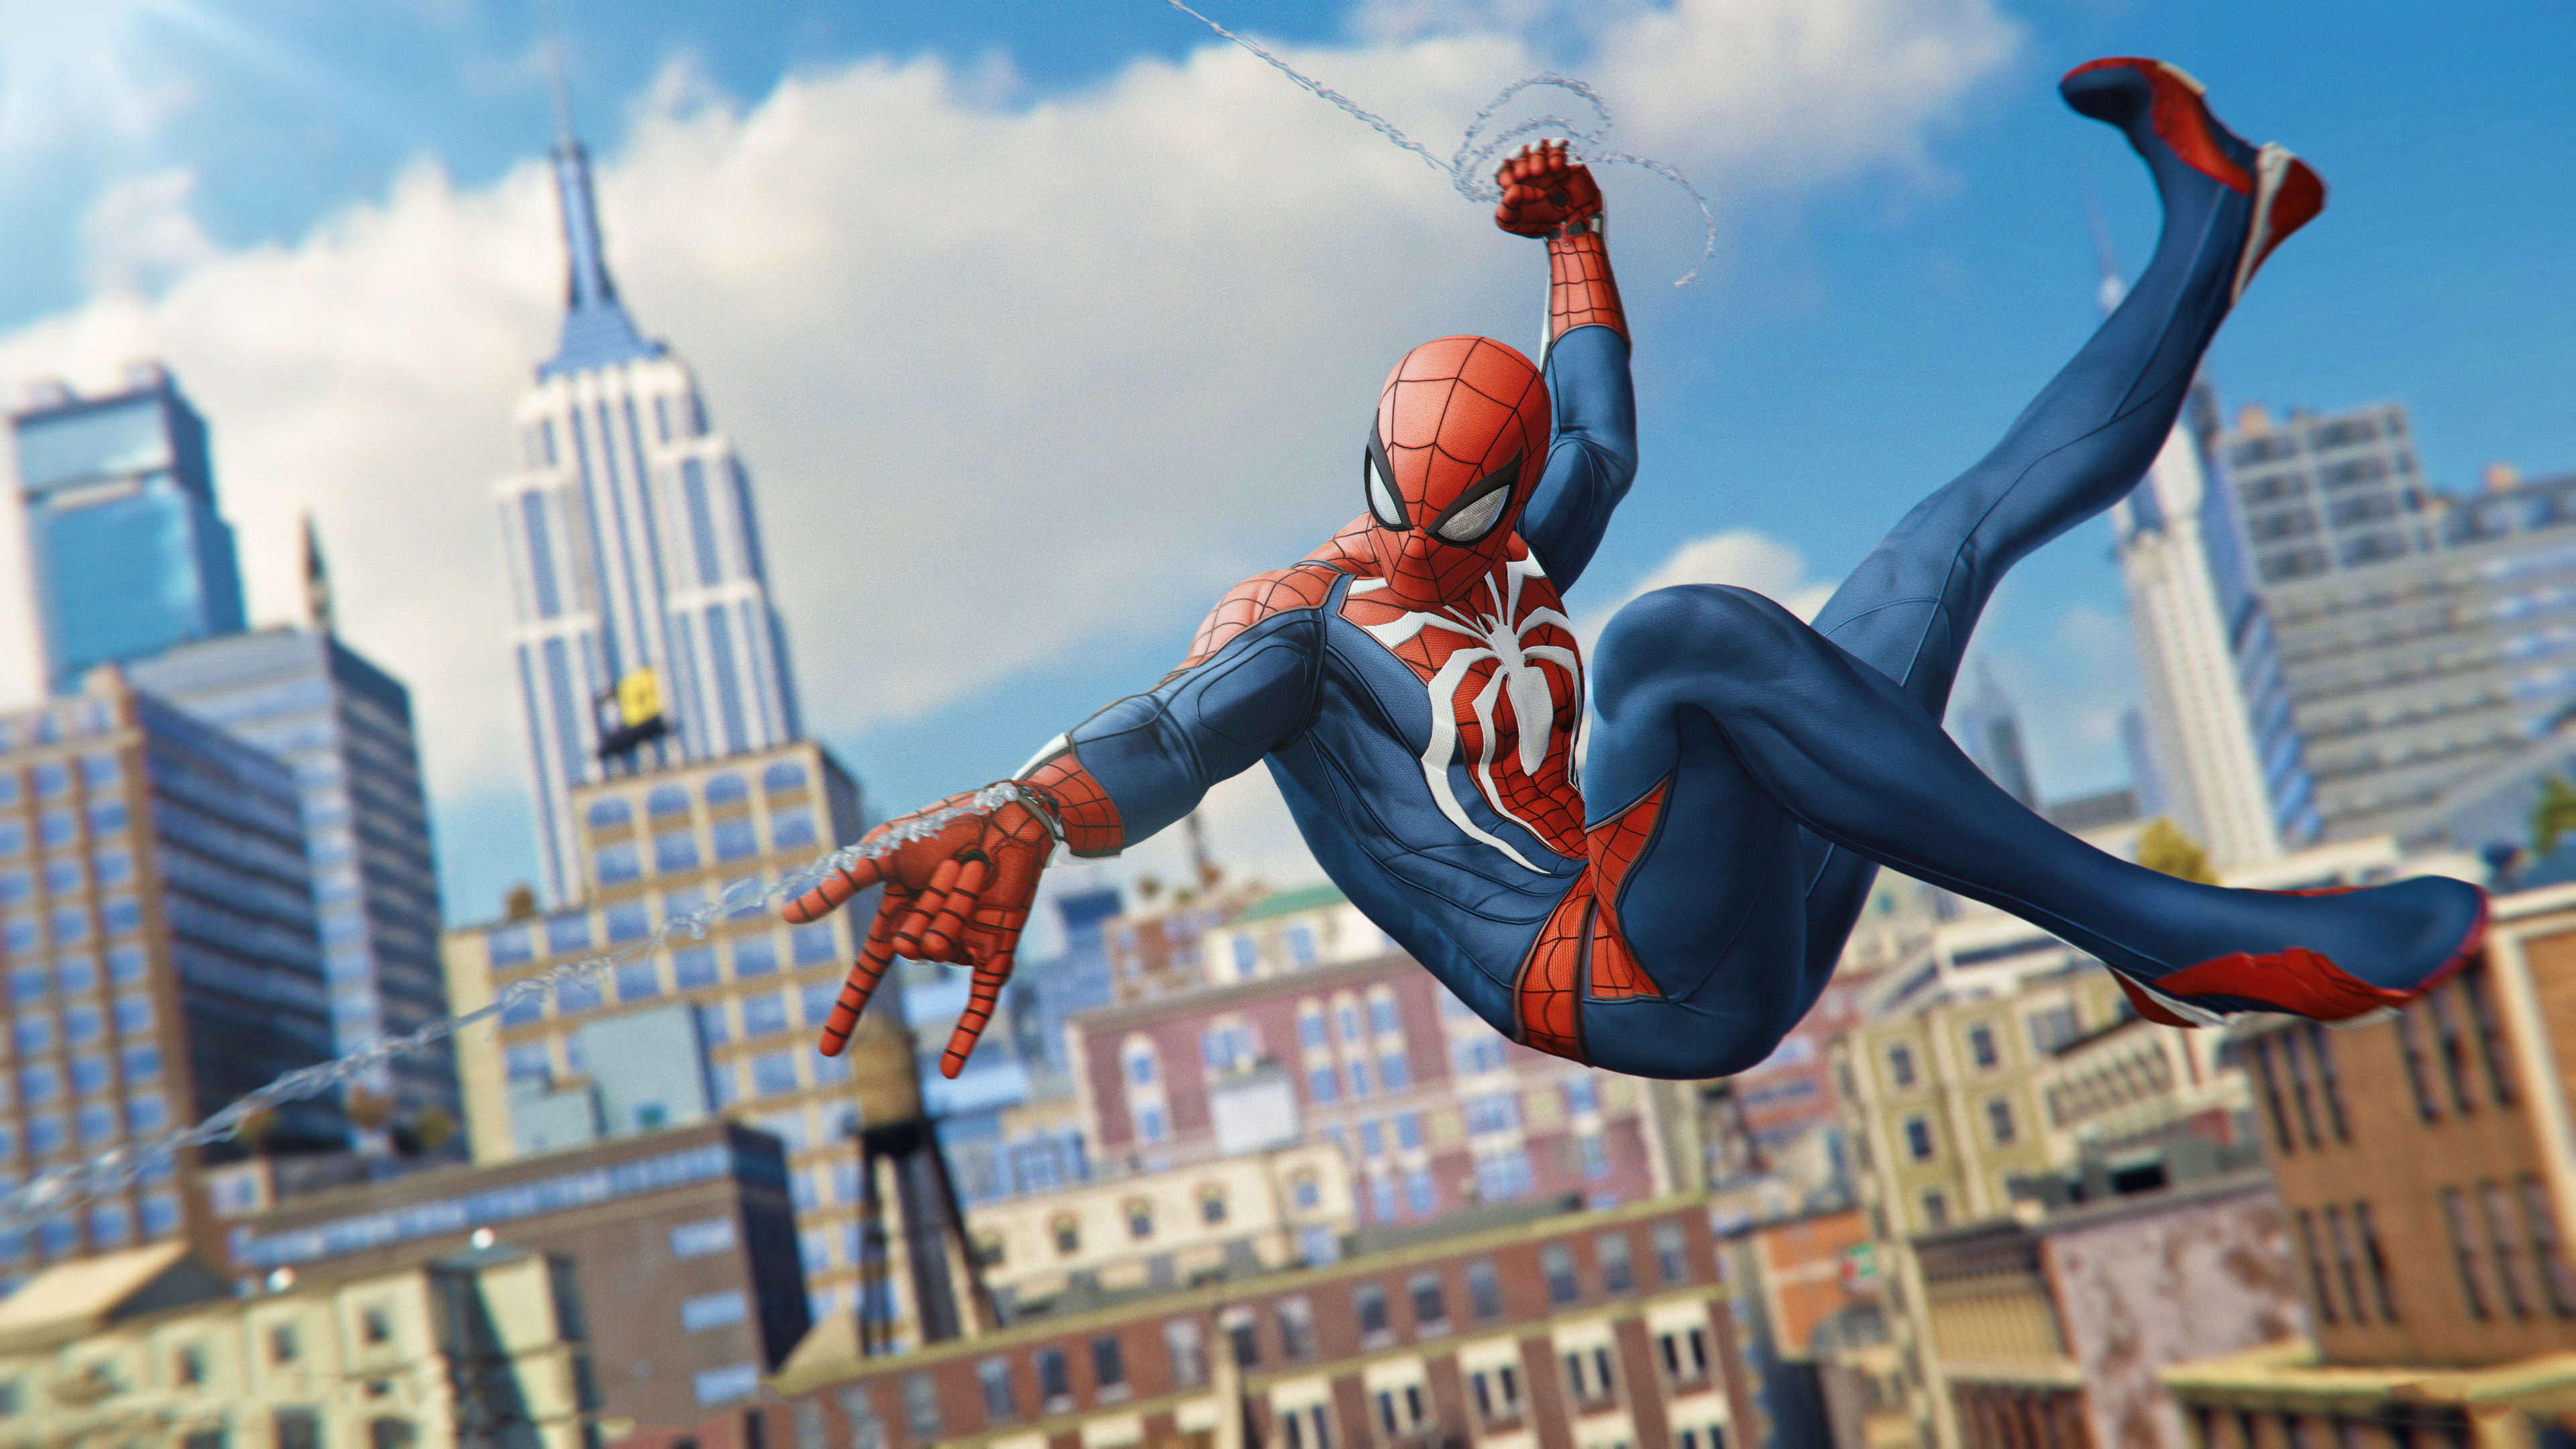 Spiderman 2018 Ps4 Game 4k Hd Games 4k Wallpapers Images Backgrounds Photos And Pictures